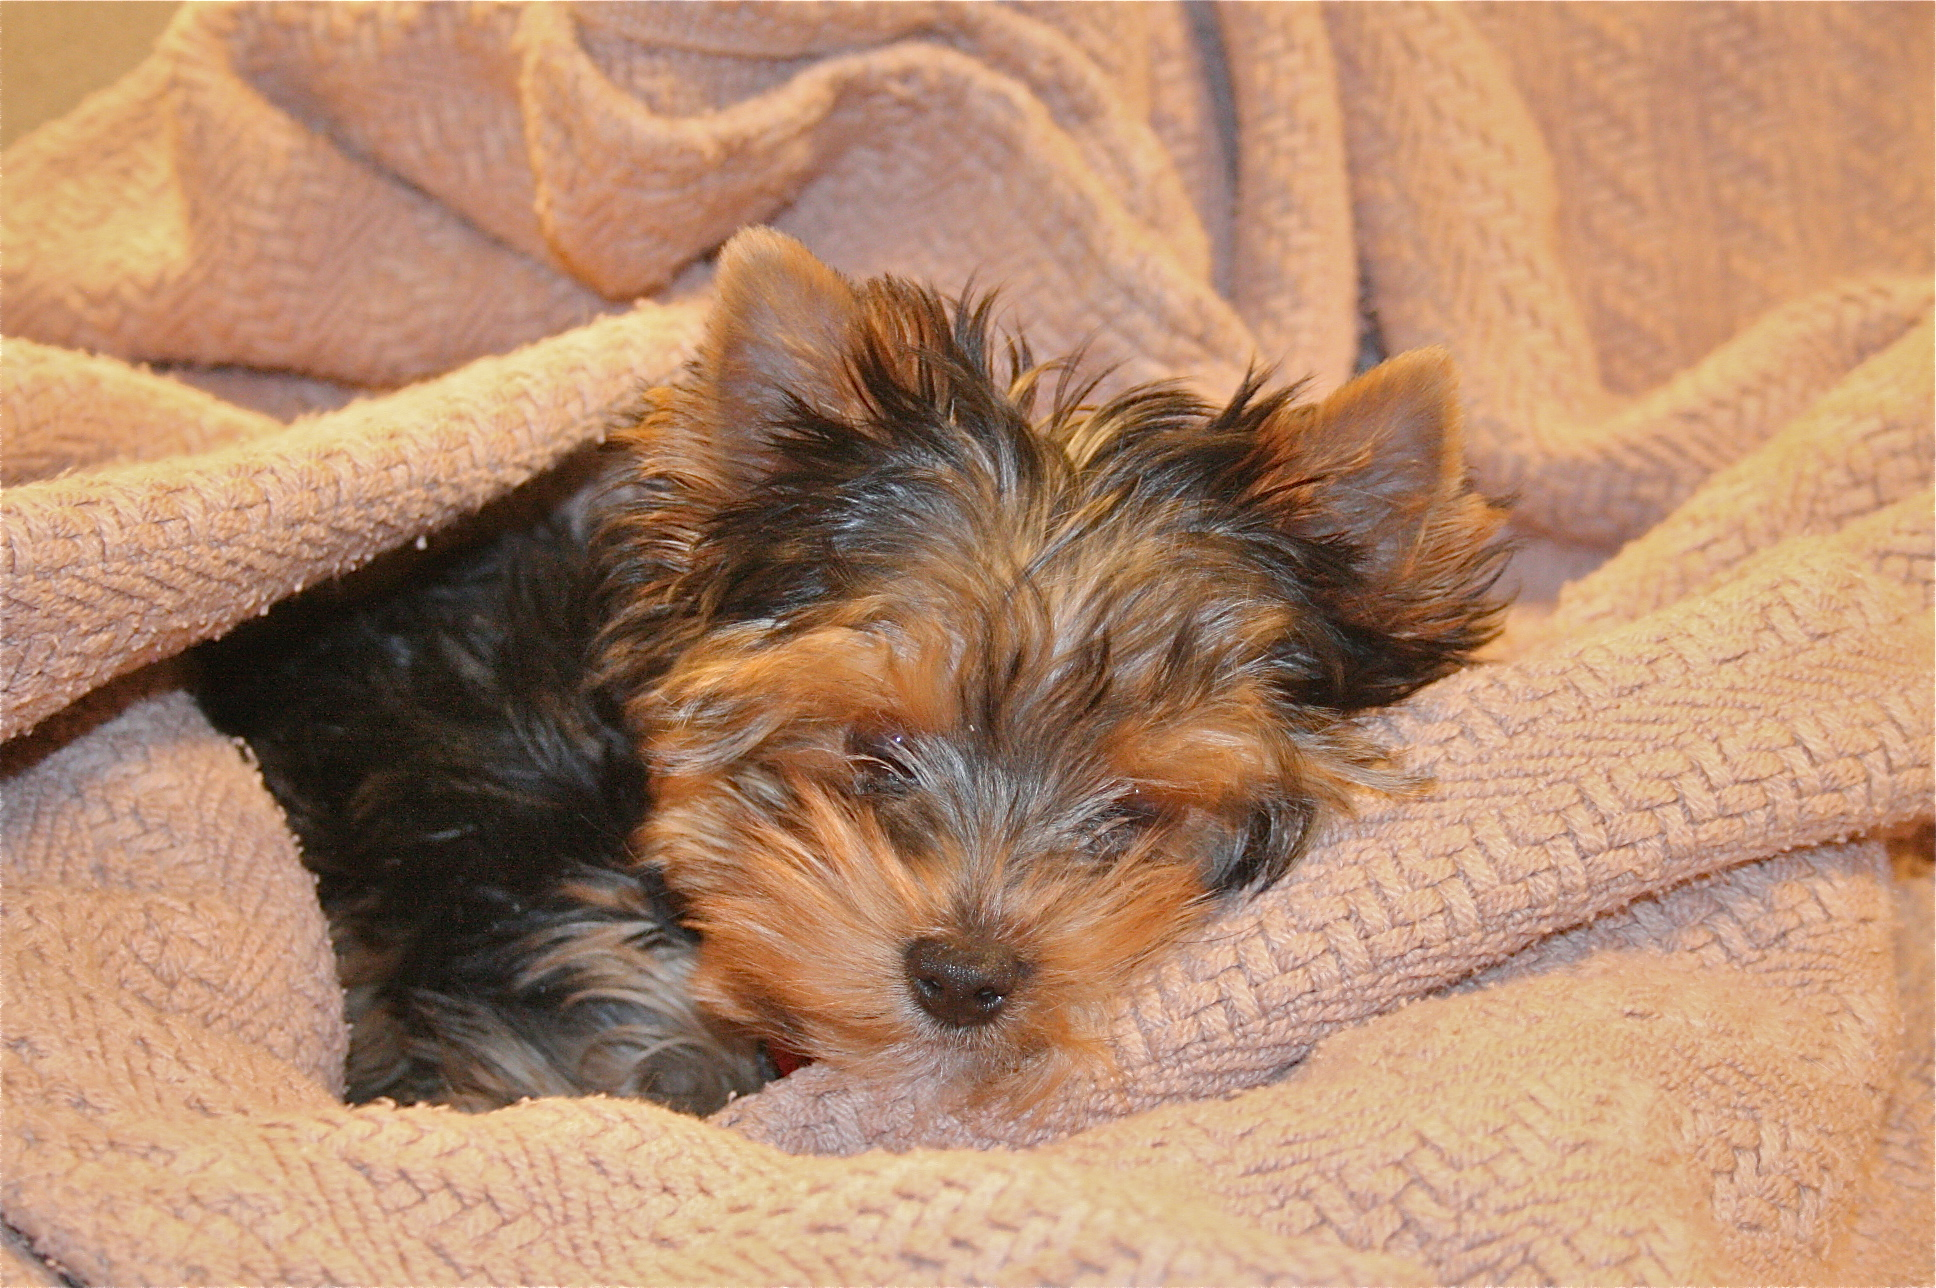 Dainty Dog Breeder Poodle Or Dog Breeder Poodle Or Yorkie Norrn Virginia Virginia Do Yorkies Shed A Lot Do Biewer Yorkies Shed bark post Do Yorkies Shed